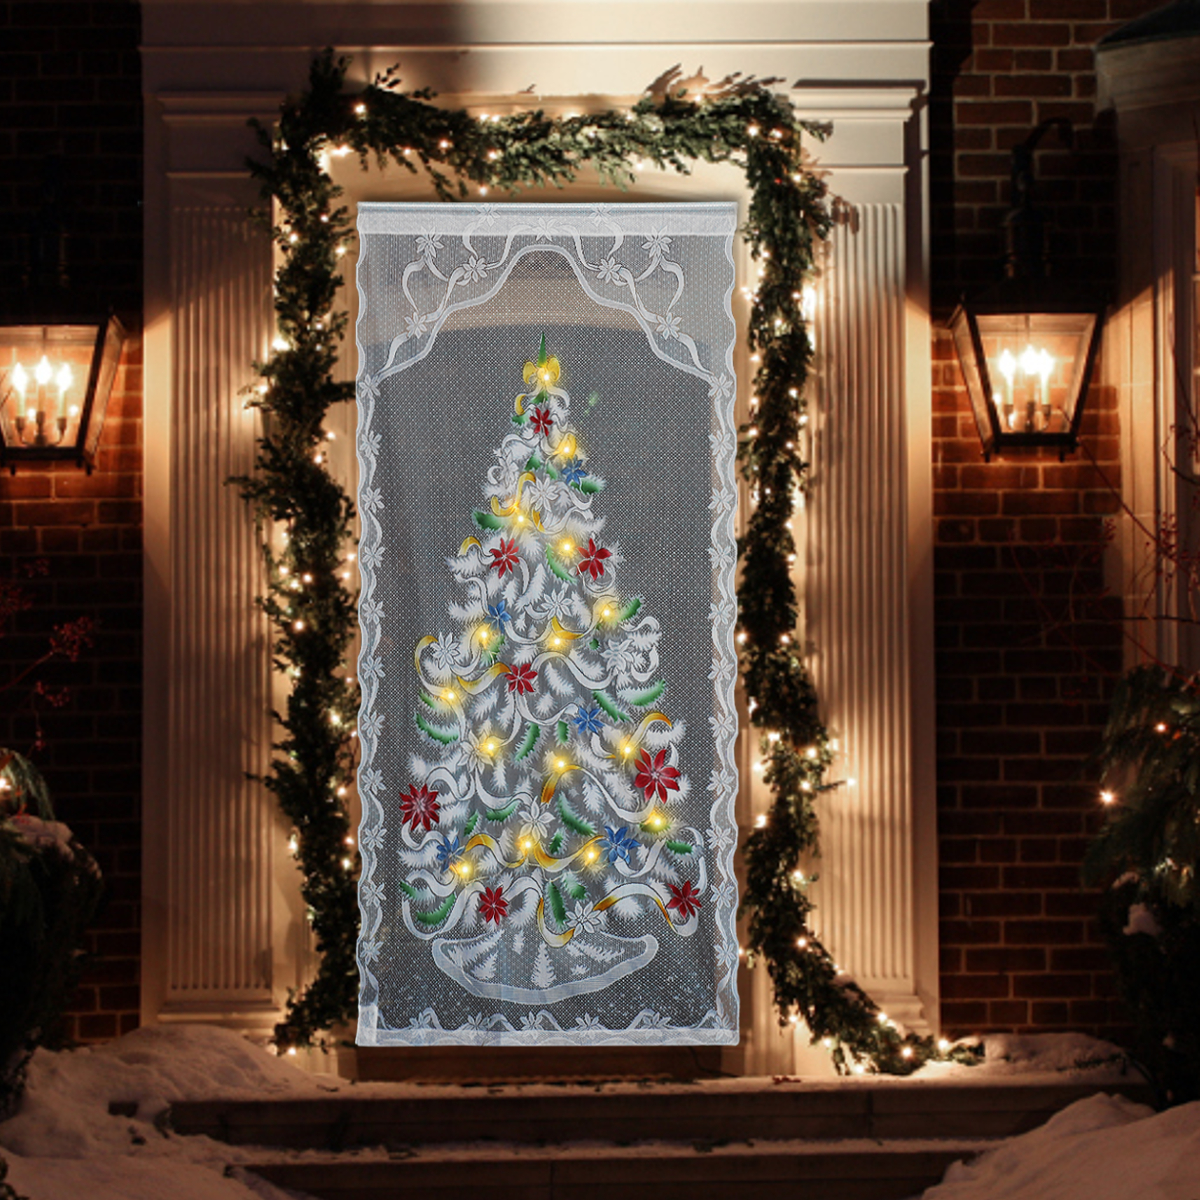 """40x84"""" Christmas LED Light Up Lace Window Curtain Door Cloth Christmas Party Decor White Translucent Lace Fabric Wavy Edges"""